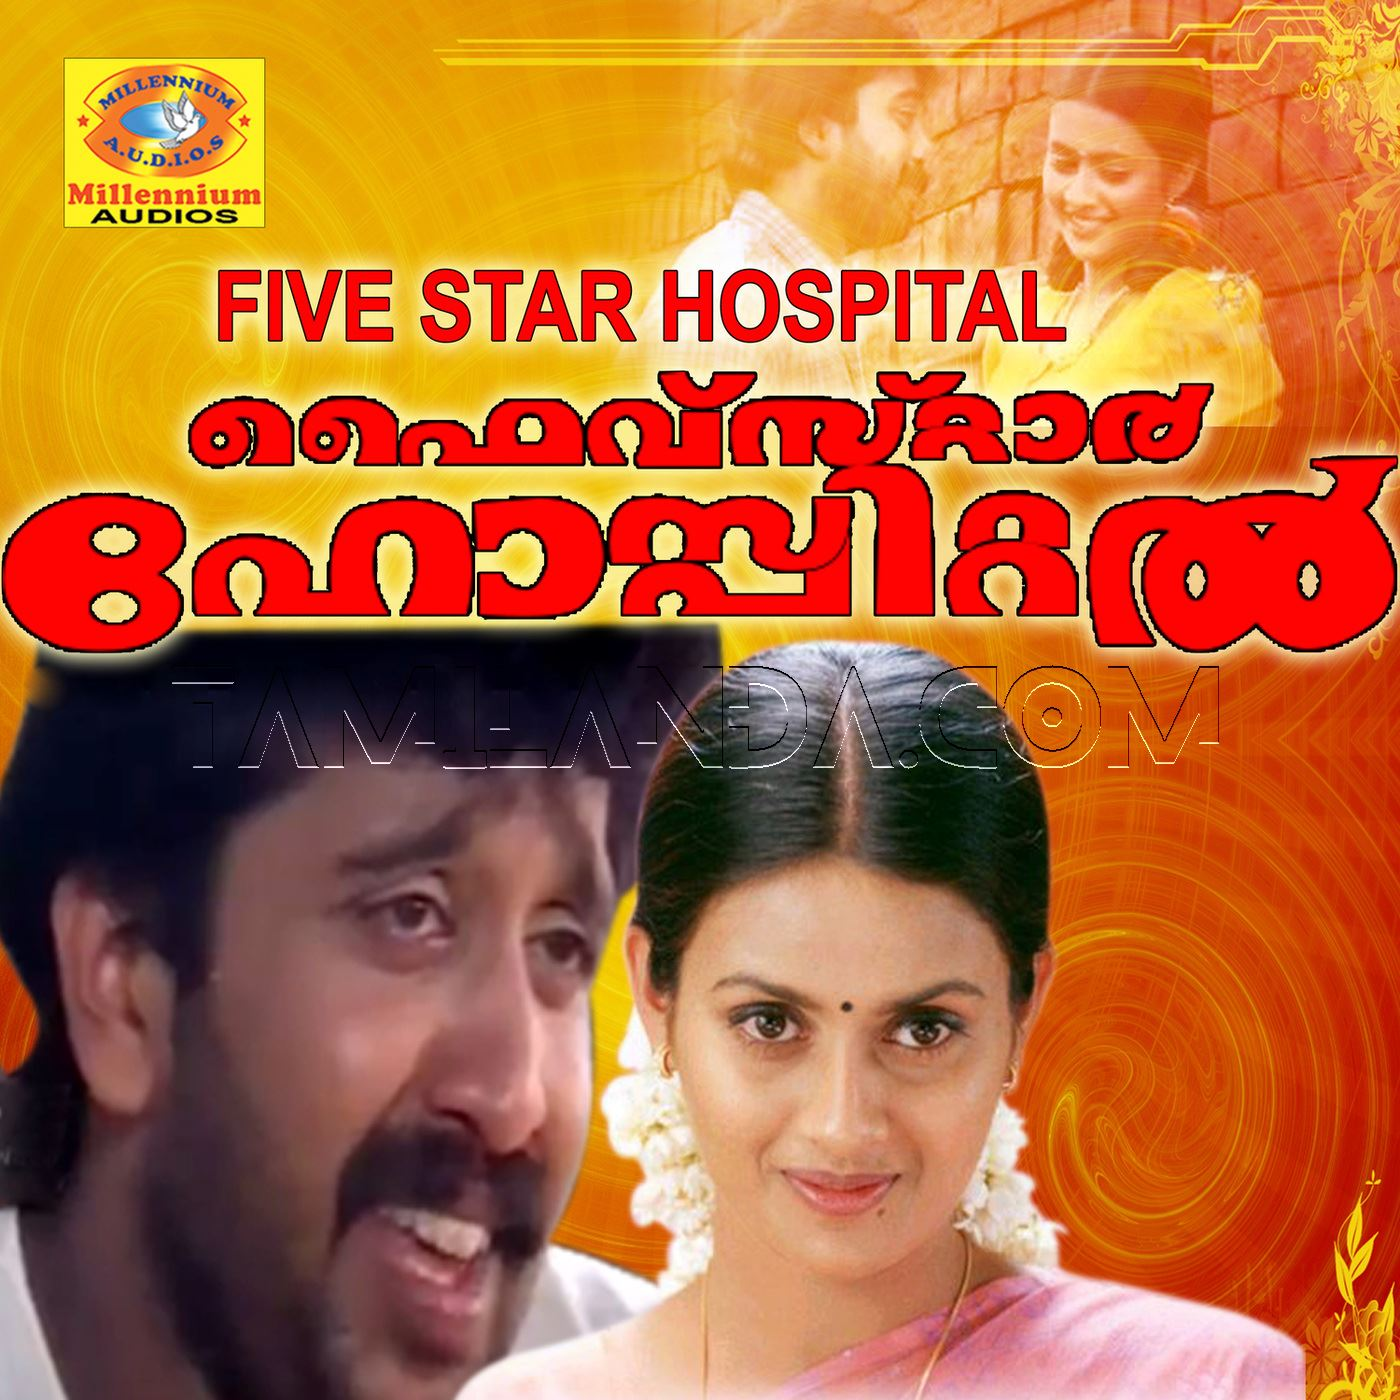 Five Star Hospital FLAC Songs (1997)